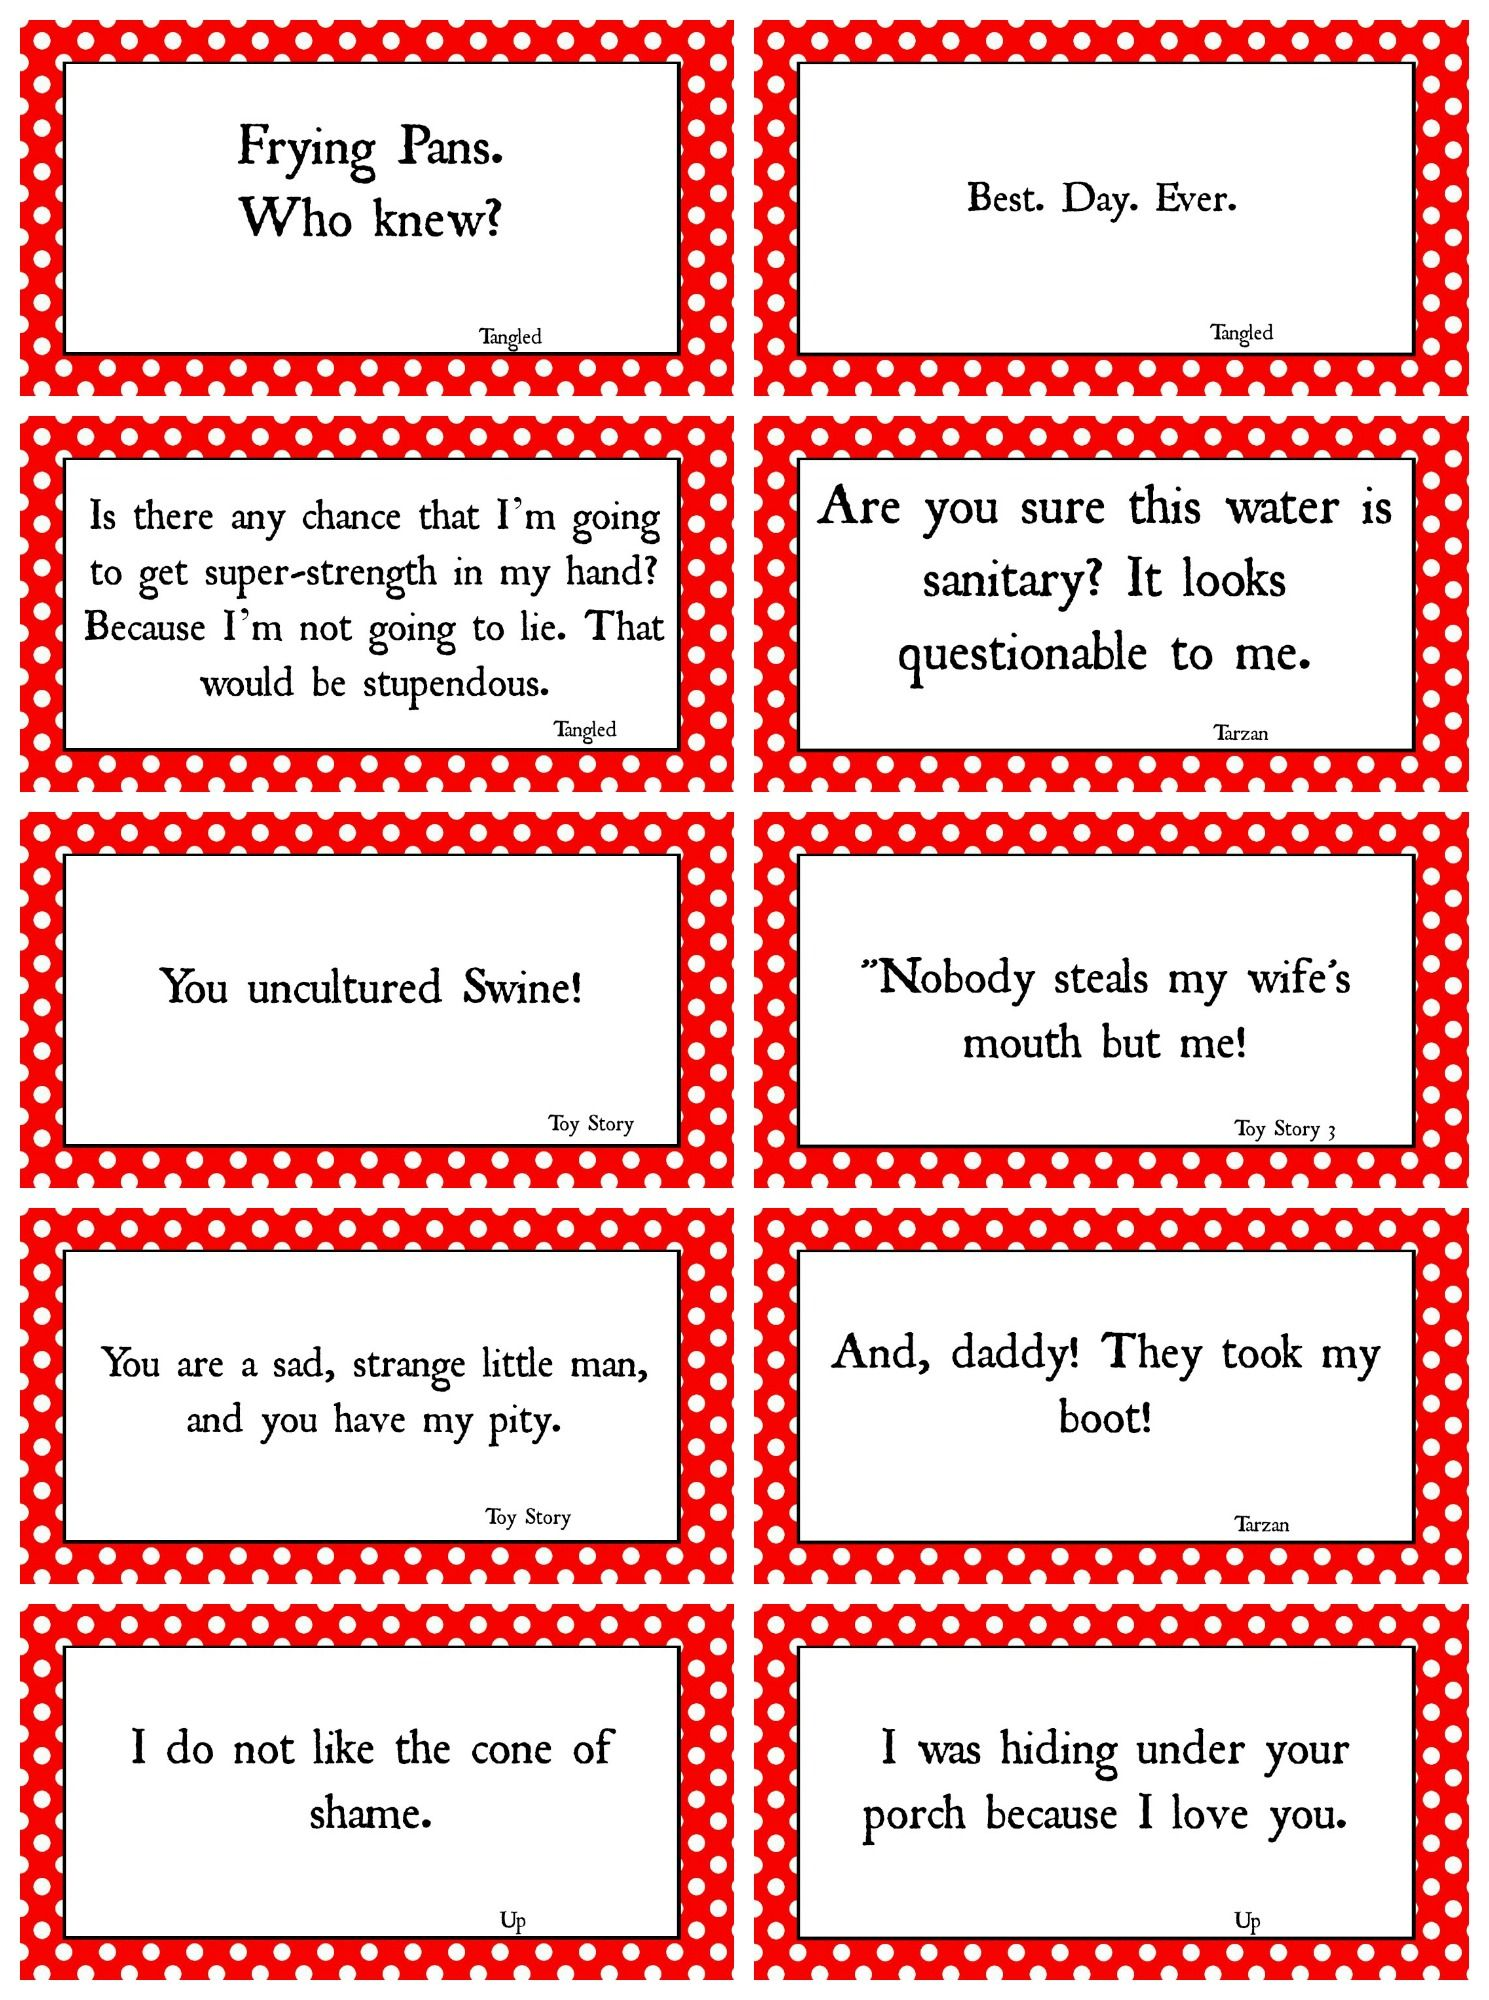 Disney Movie Quotes game with Free Printables | Pinterest | Disney ...